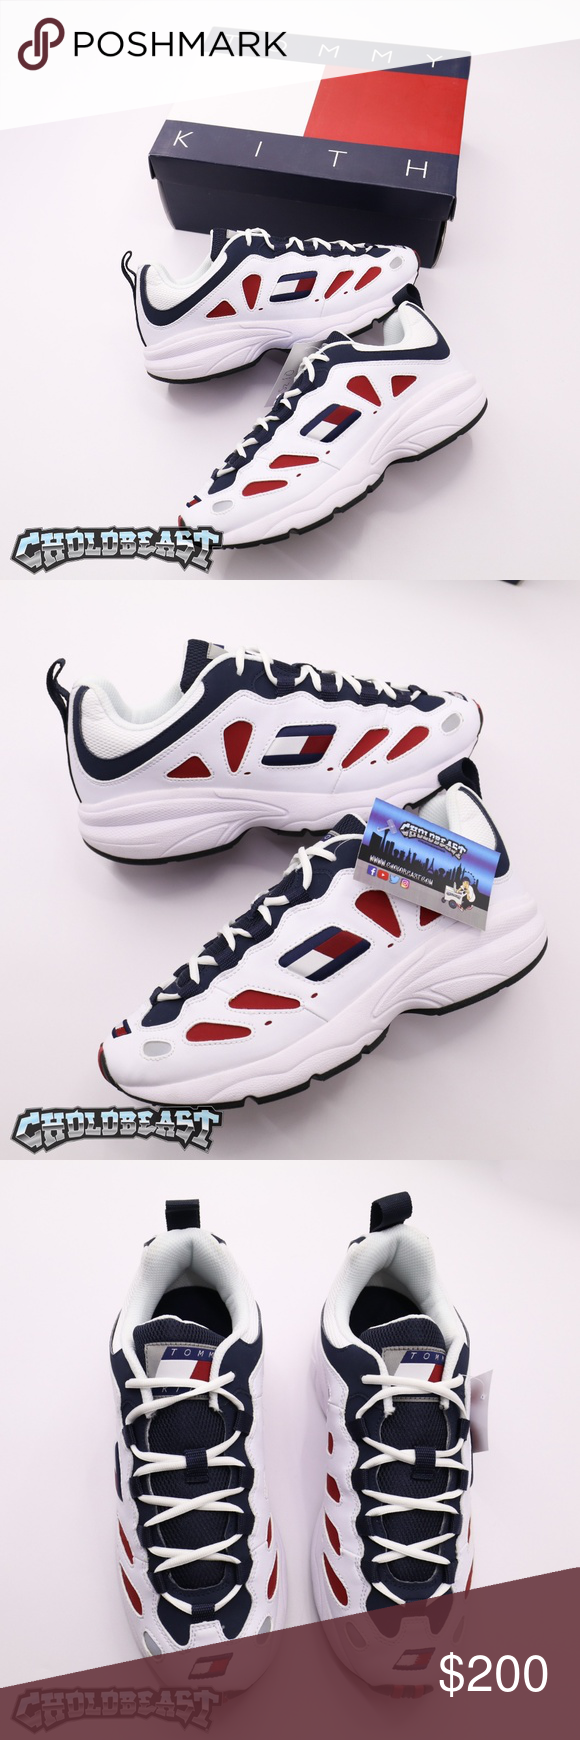 Ds Kith Tommy Hilfiger Hyperbole Lo Top Colorblock Brand New Never Worn Size 10 Og Box 100 Authentic Tag Tommy Hilfiger Tommy Hilfiger Shoes Hilfiger